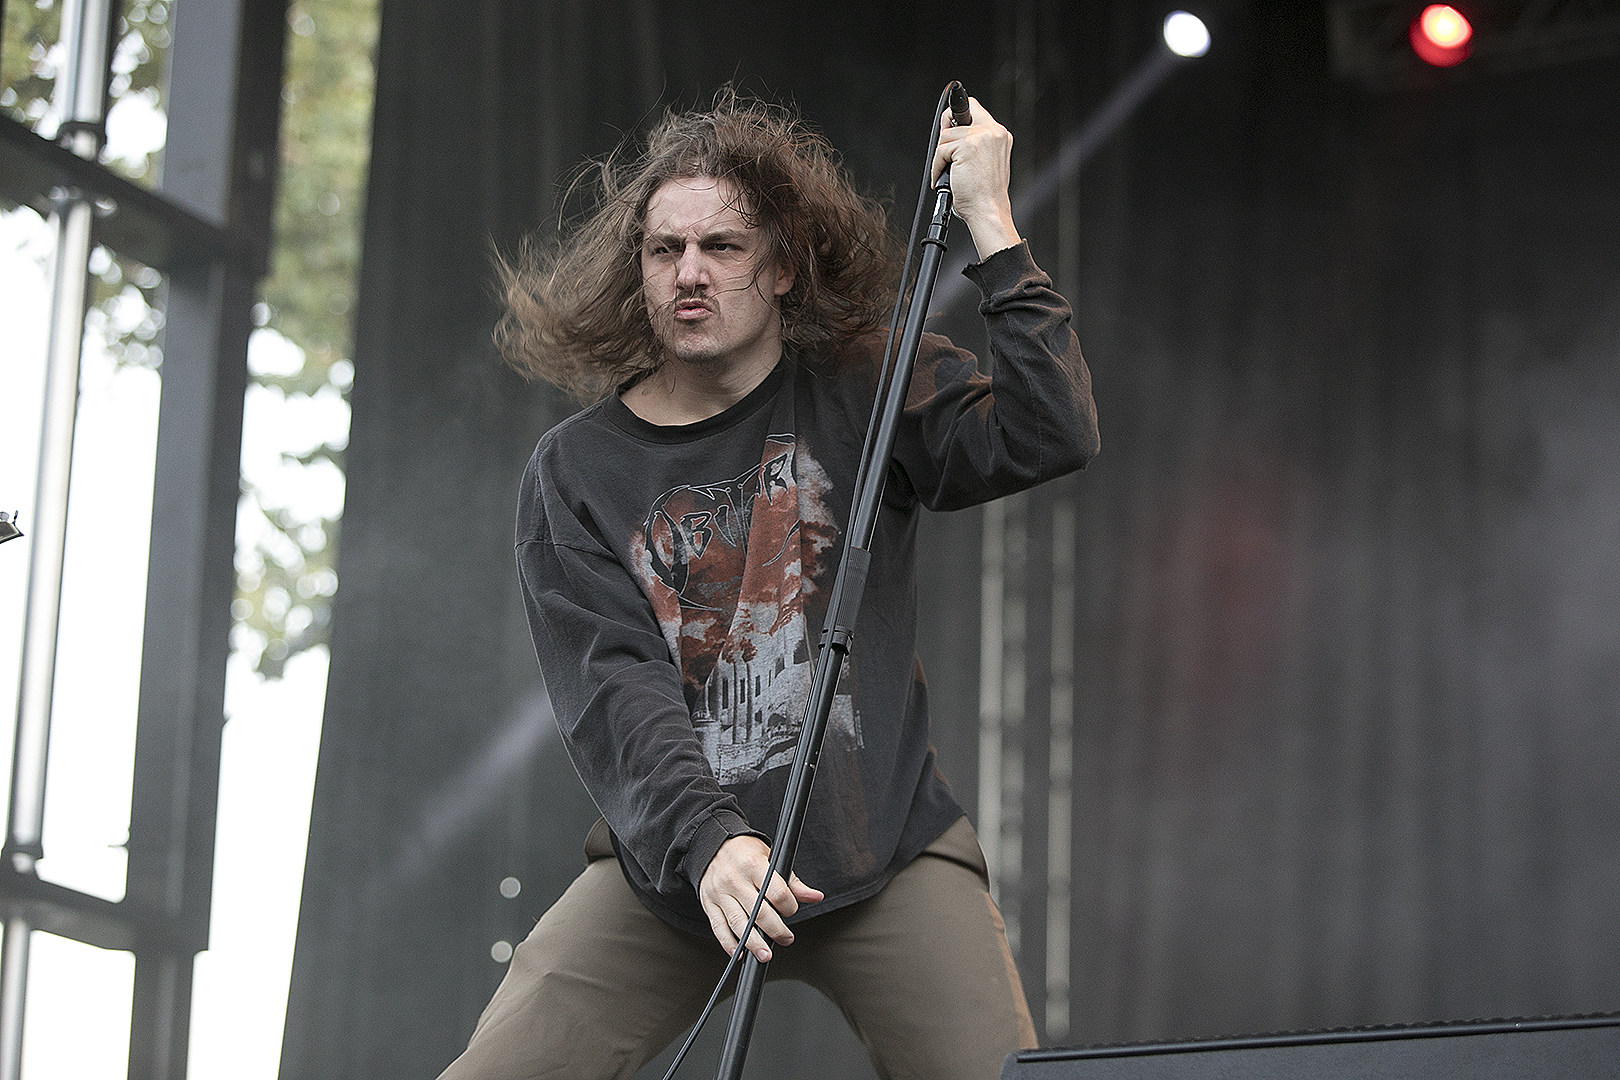 Raymond Ahner for Loudwire